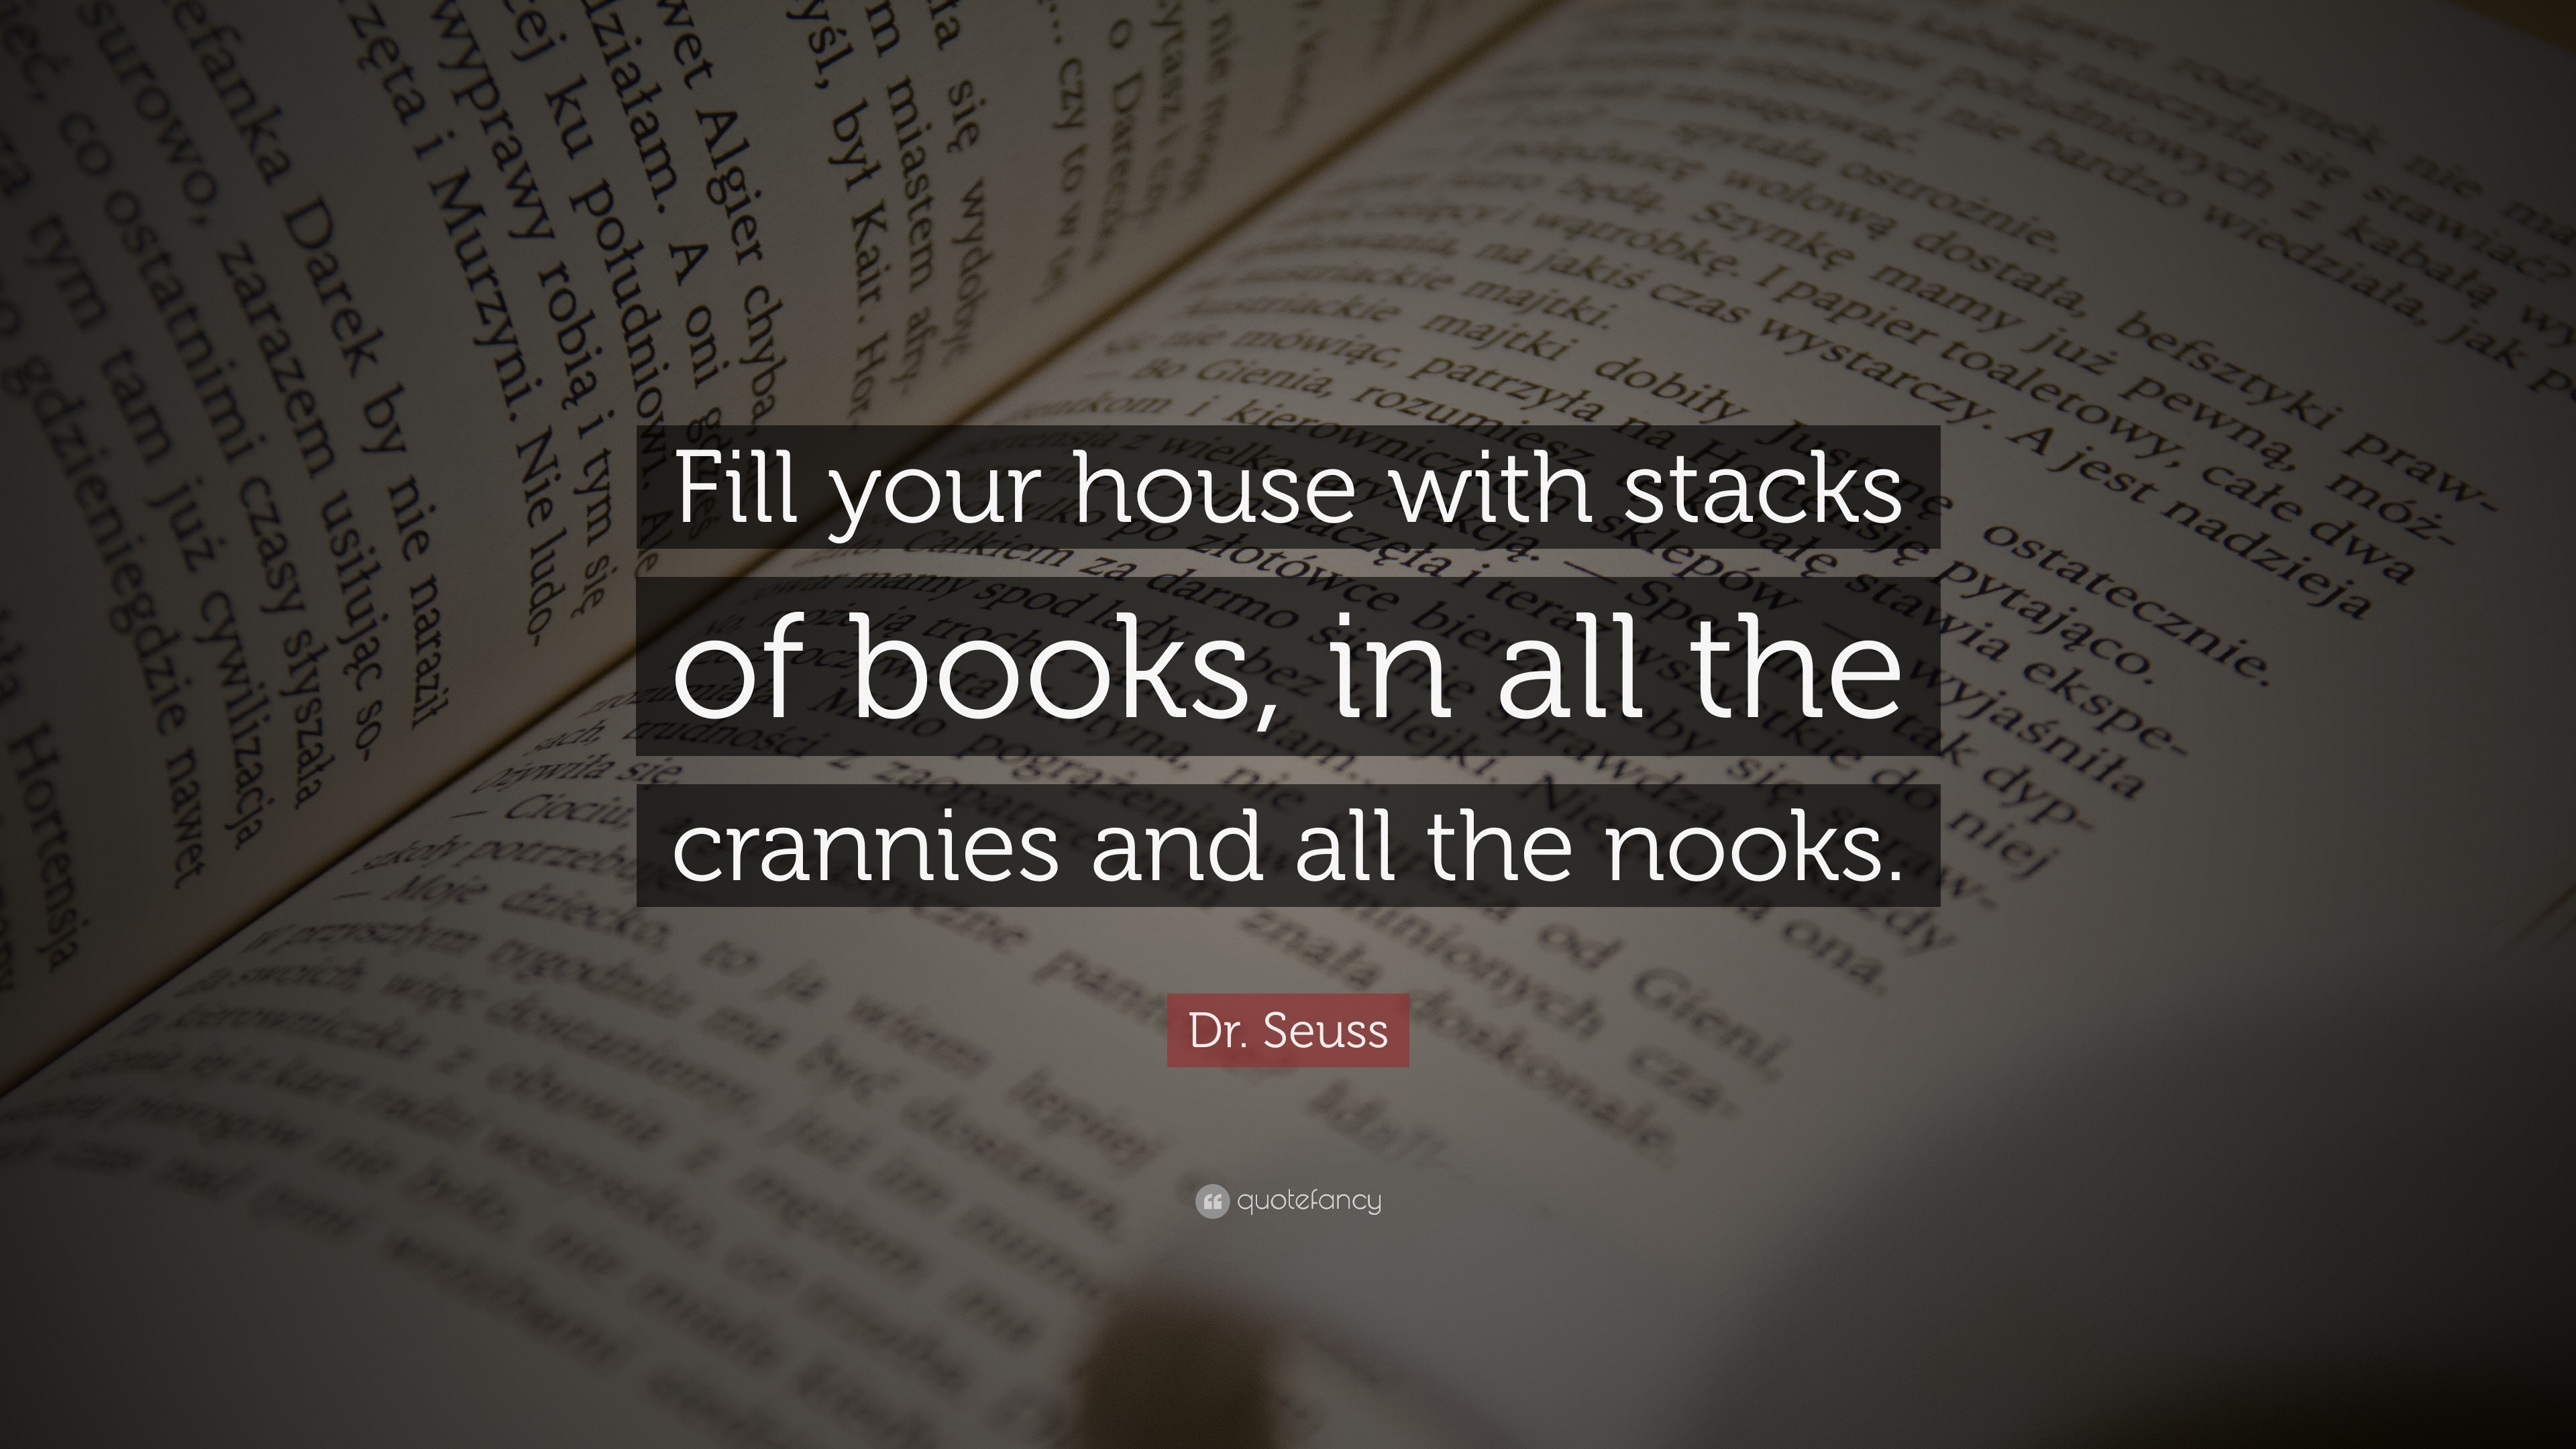 Dr Seuss Quote Fill your house with stacks of books in all the